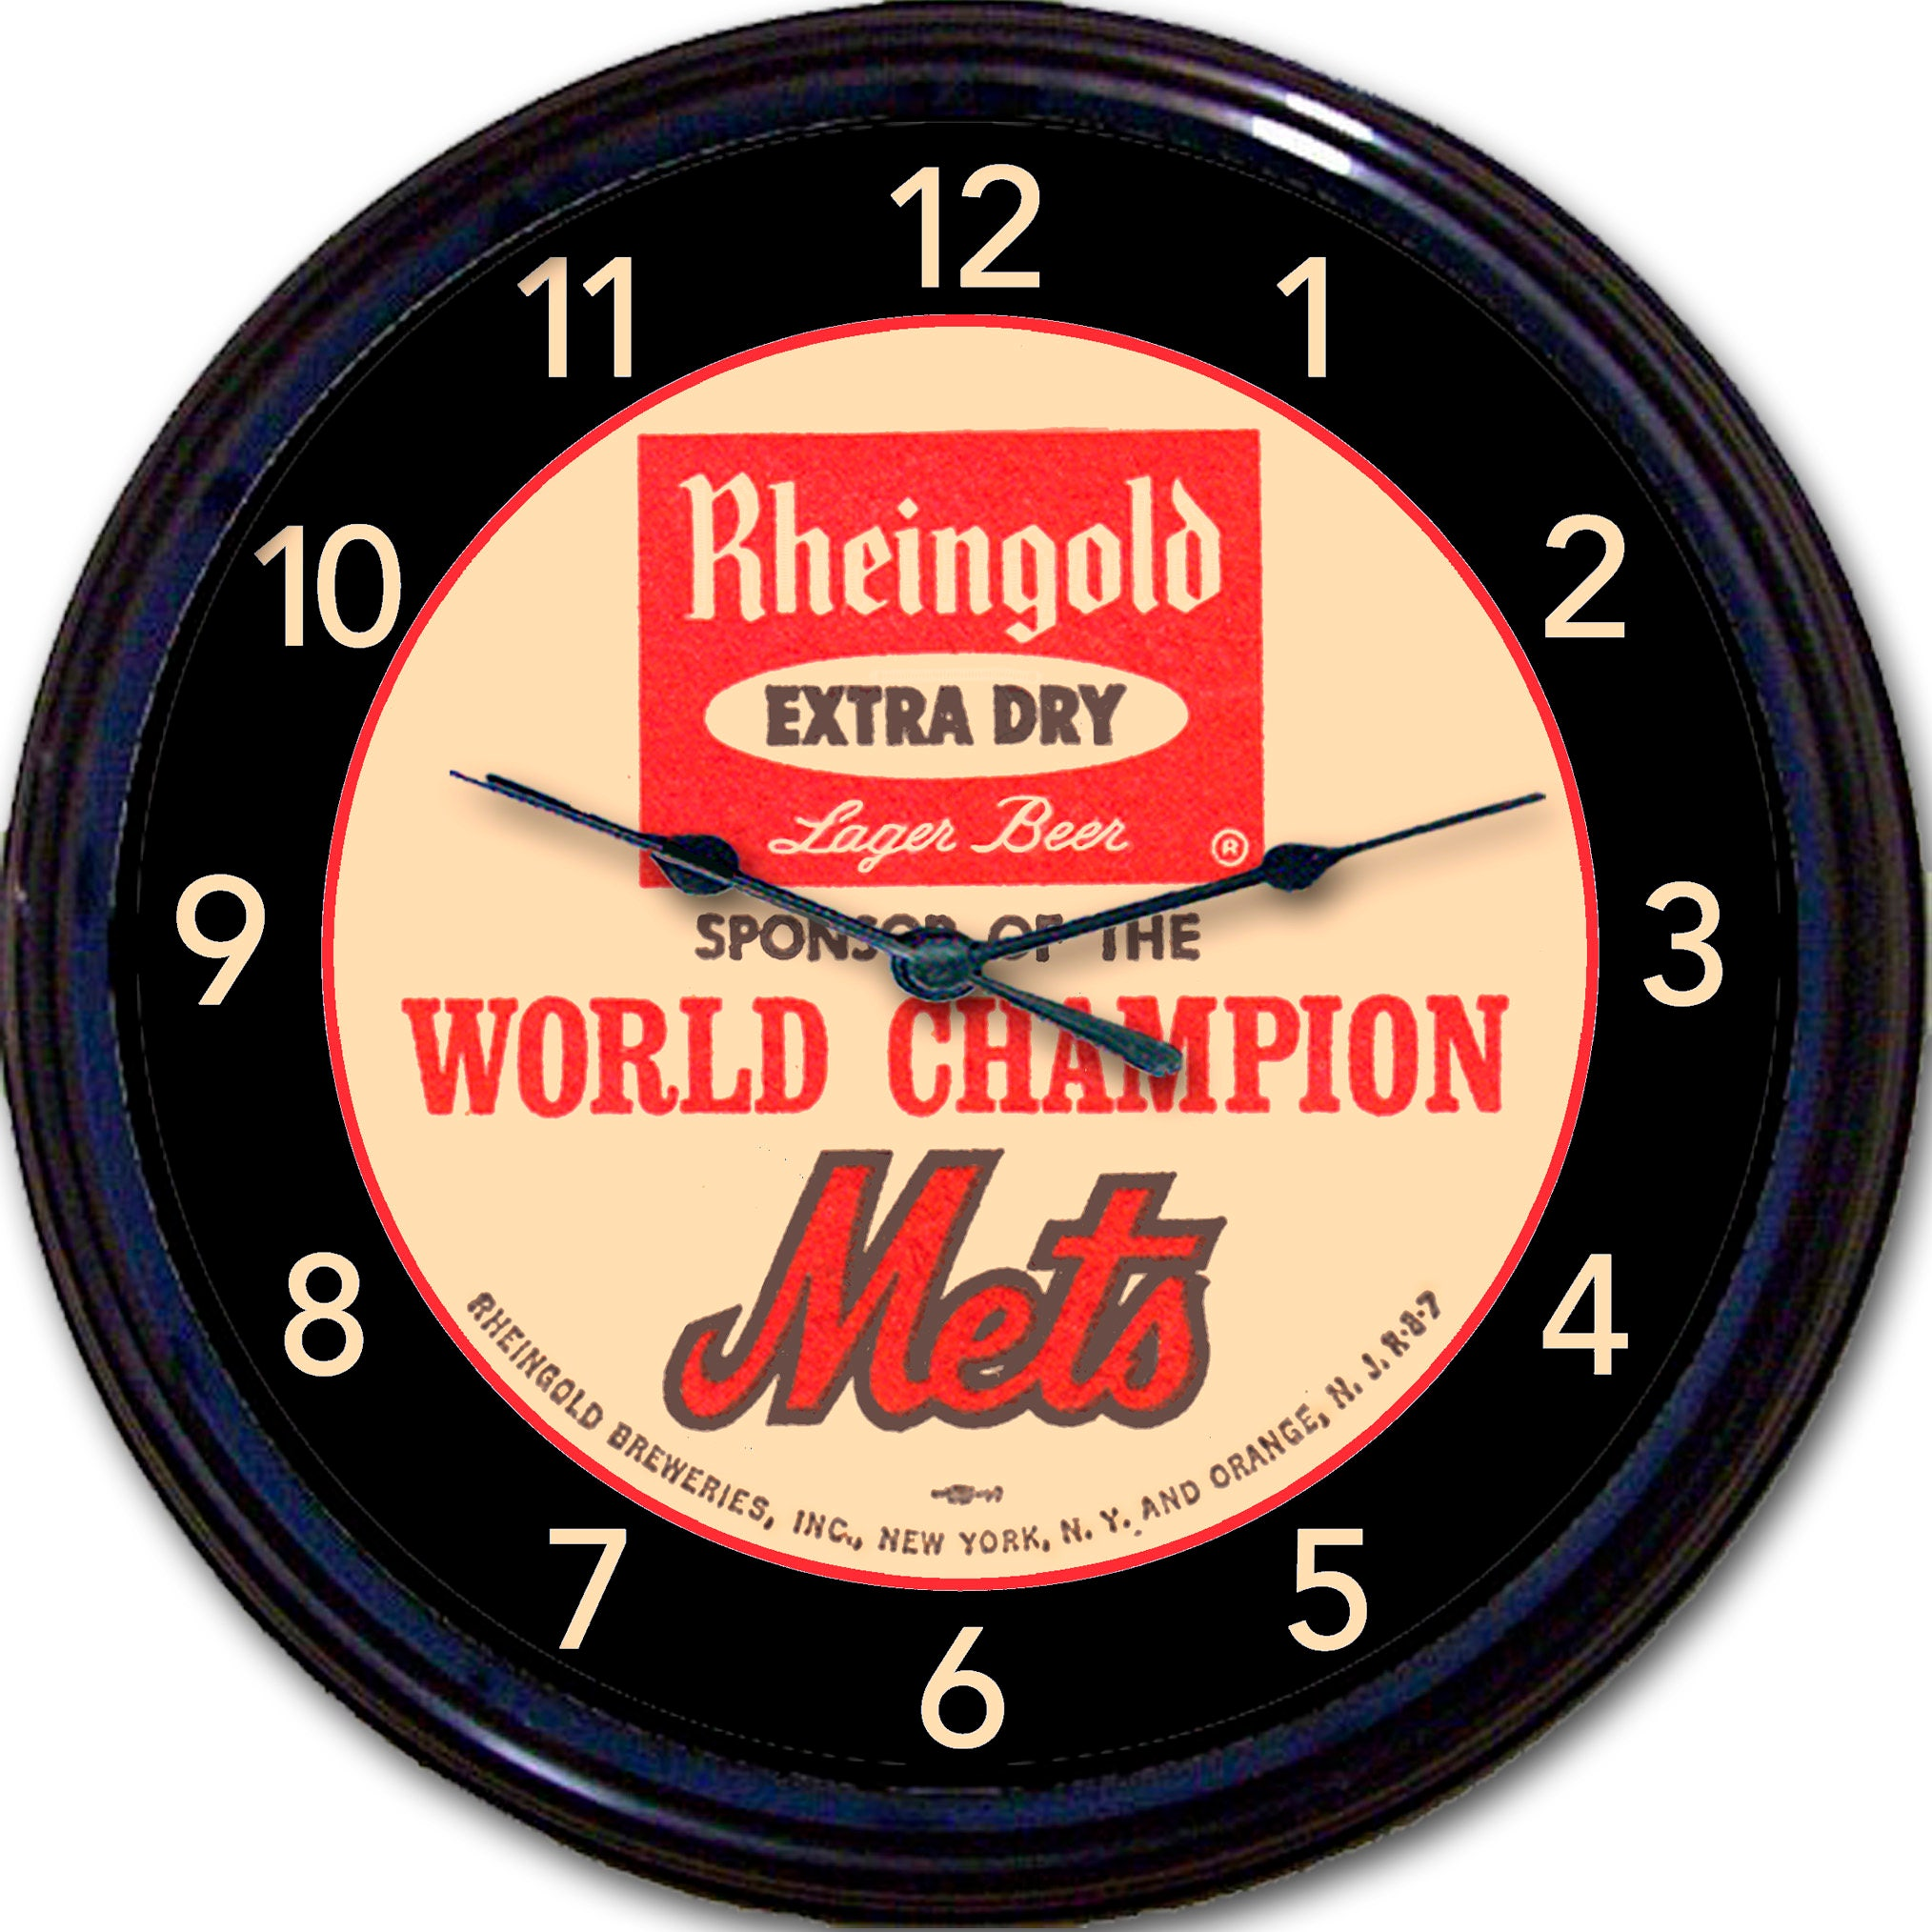 Ny mets beer rheingold coaster wall clock rheingold beer zoom amipublicfo Image collections